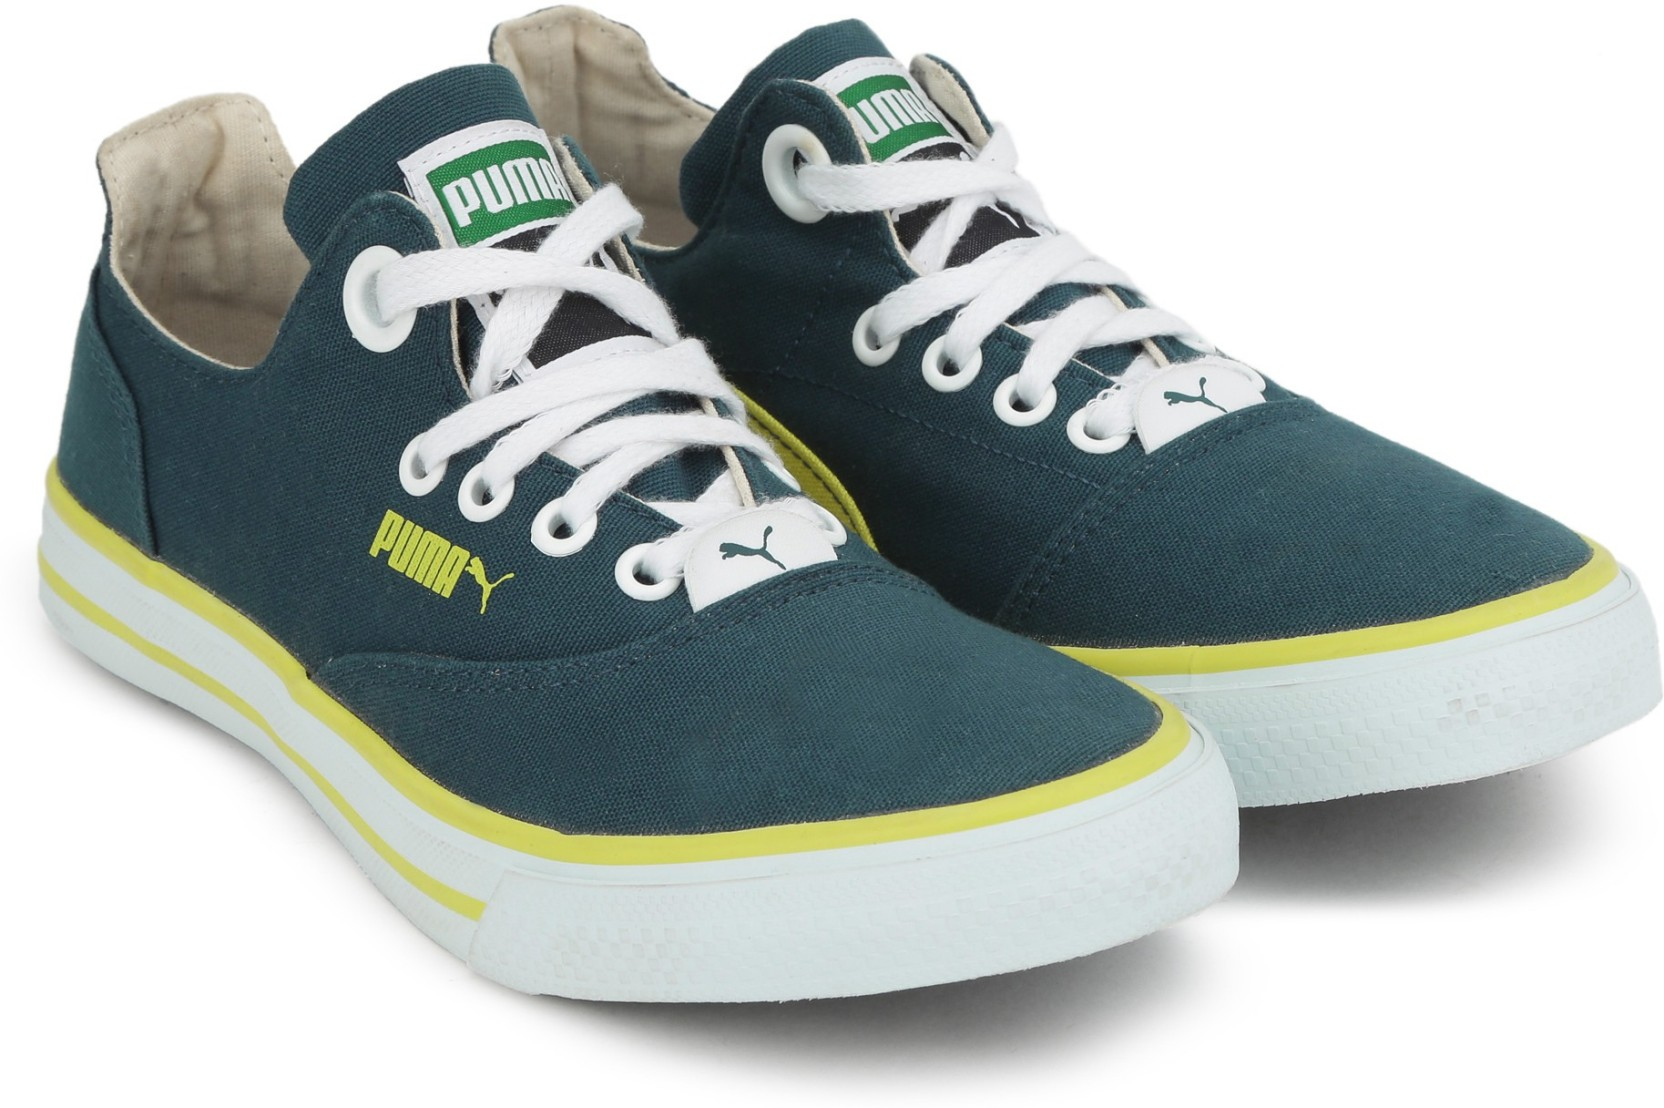 Puma Limnos CAT 3 DP Canvas Sneakers For Women - Buy blue wing teal ... b8e7e536d5